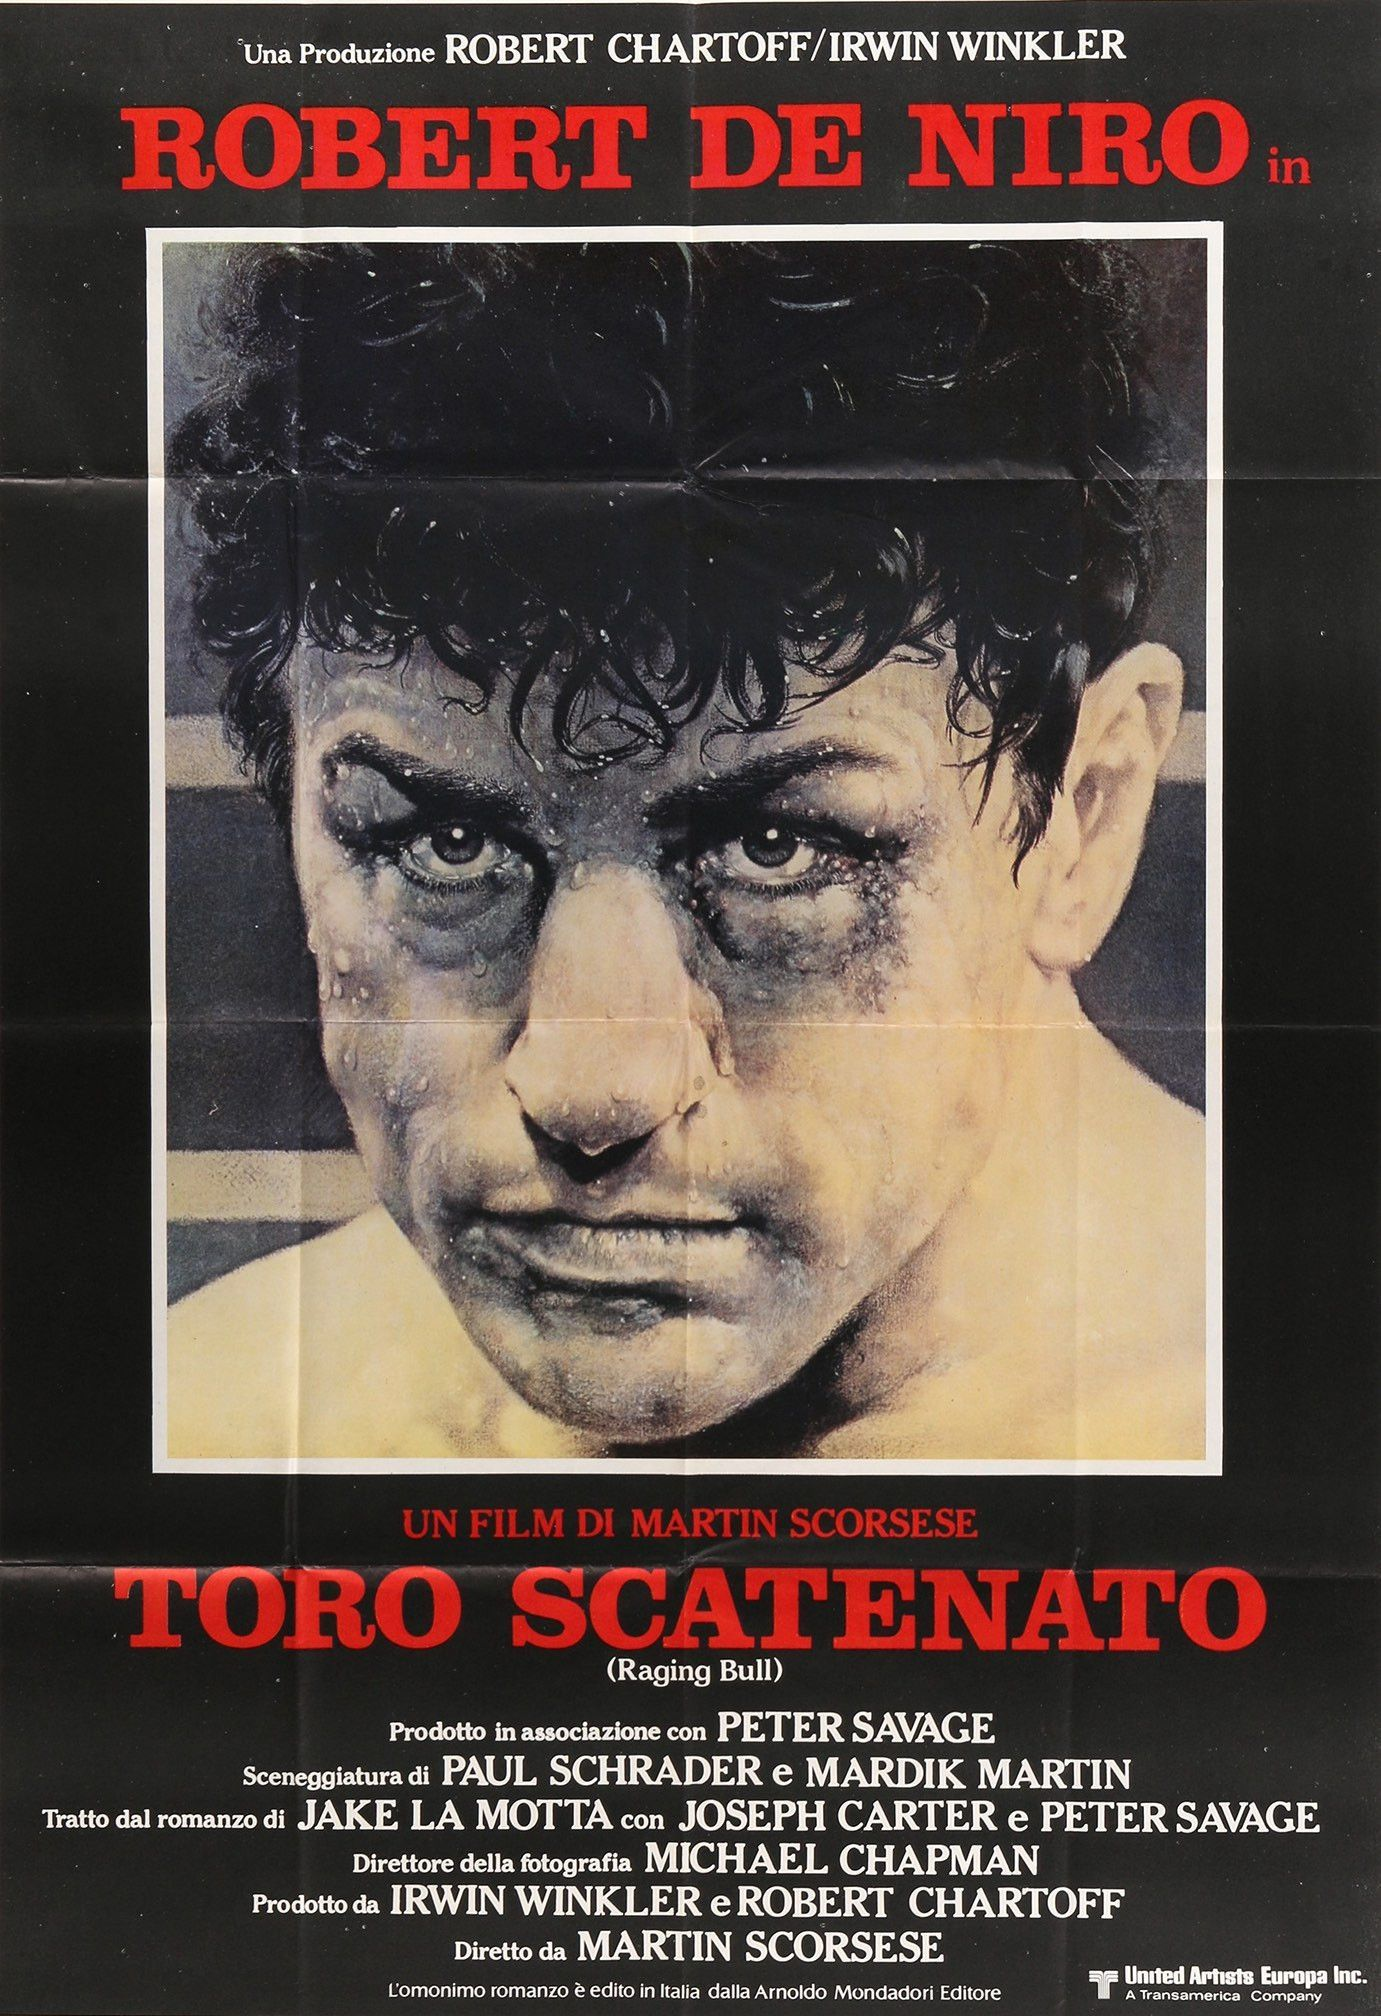 "Film: Raging Bull (1980) Year poster printed: 1981 (first theatrical release in Italy) Country: Italy Exact Size: 39"" x 55"" Artist: Kunio Hagio This is an original, Italian 2 fogli movie poster from 1"